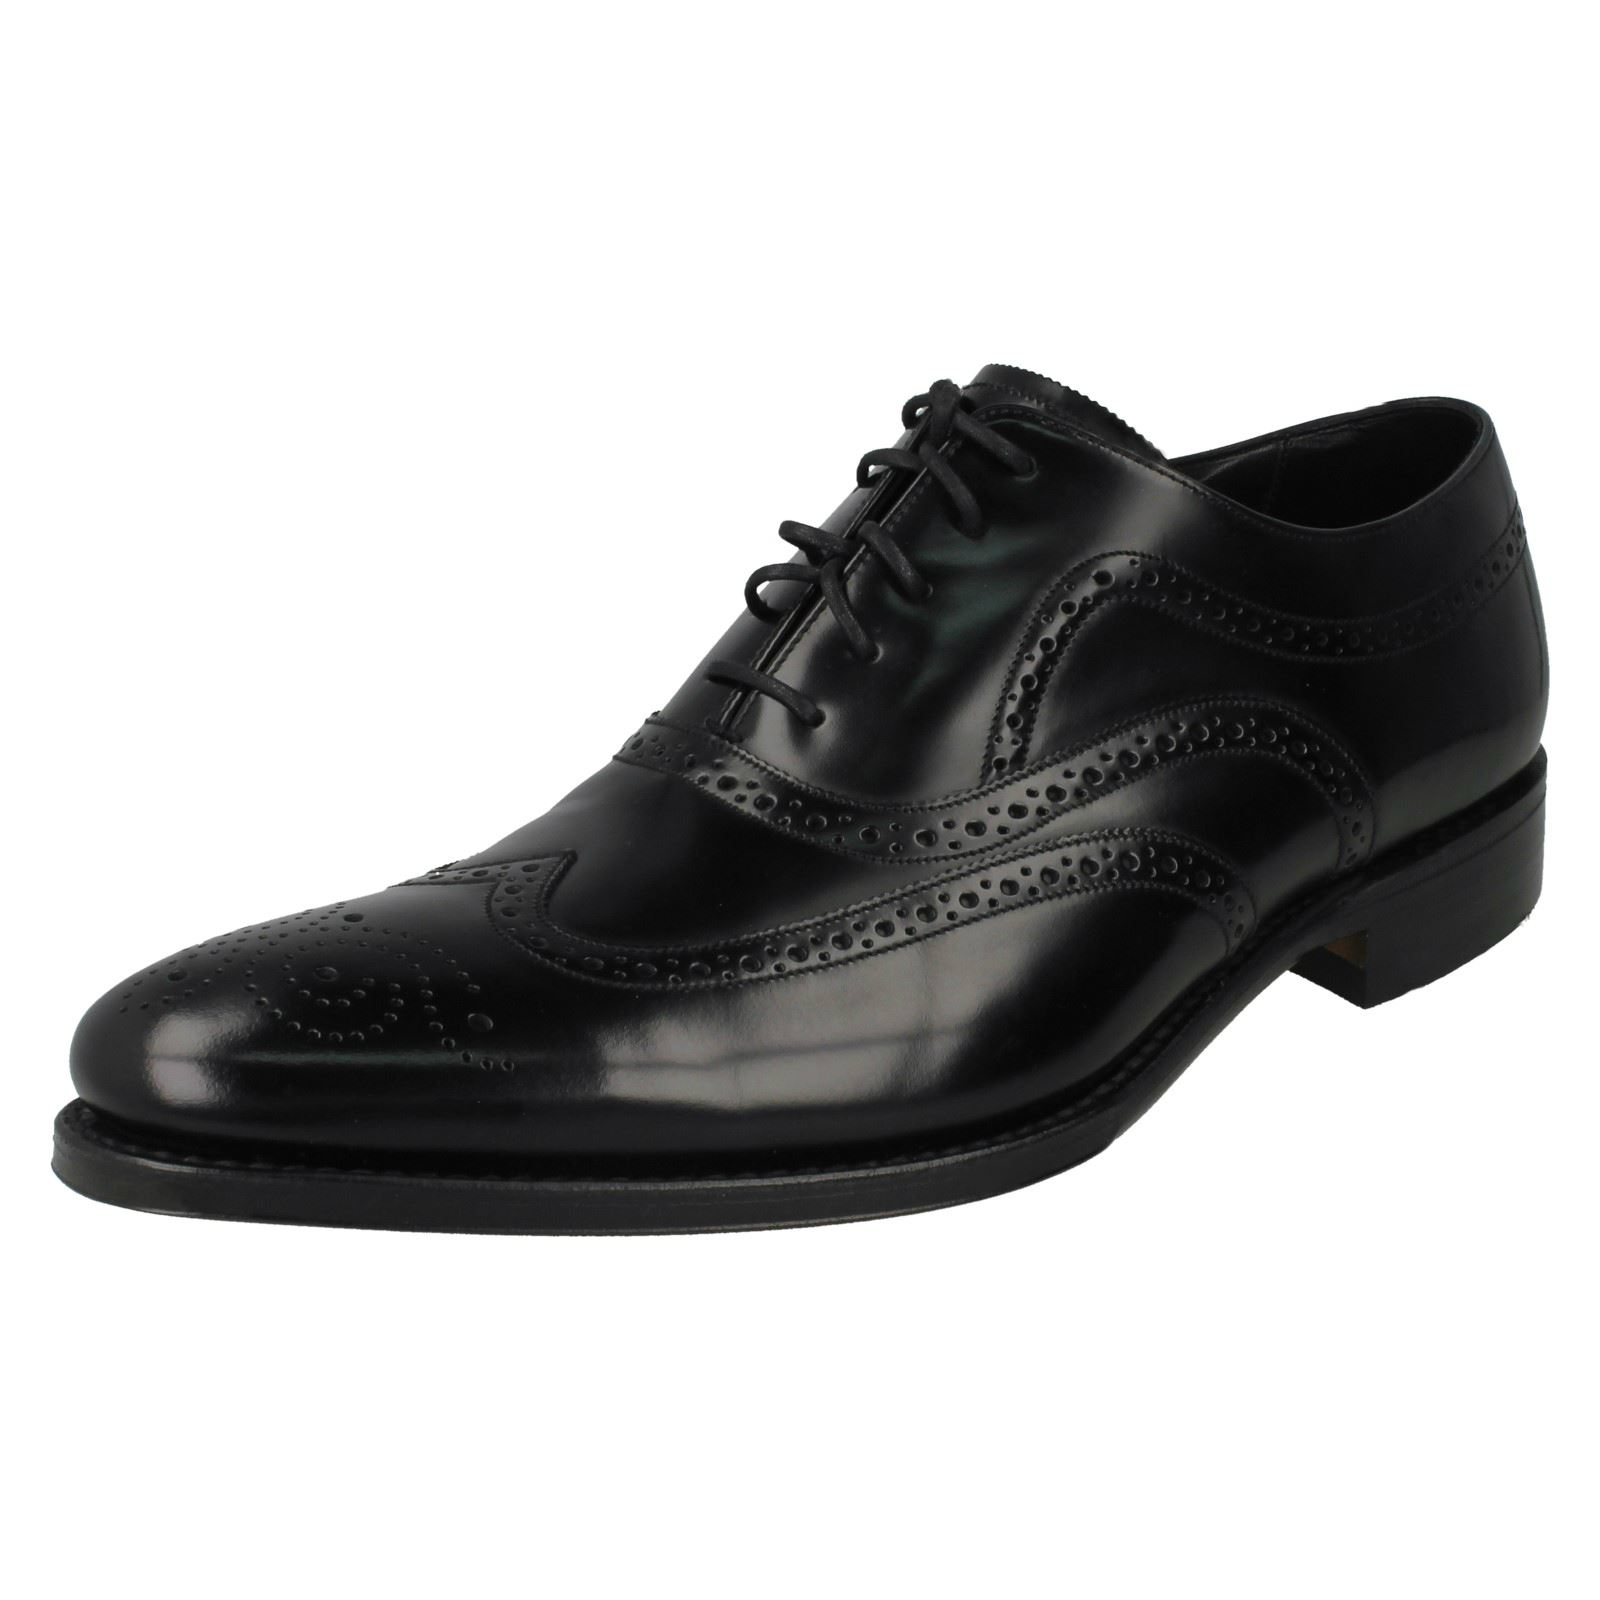 Mens Loake Lace Polished Leder Lace Loake Up Schuhes Jones 8d5b9f